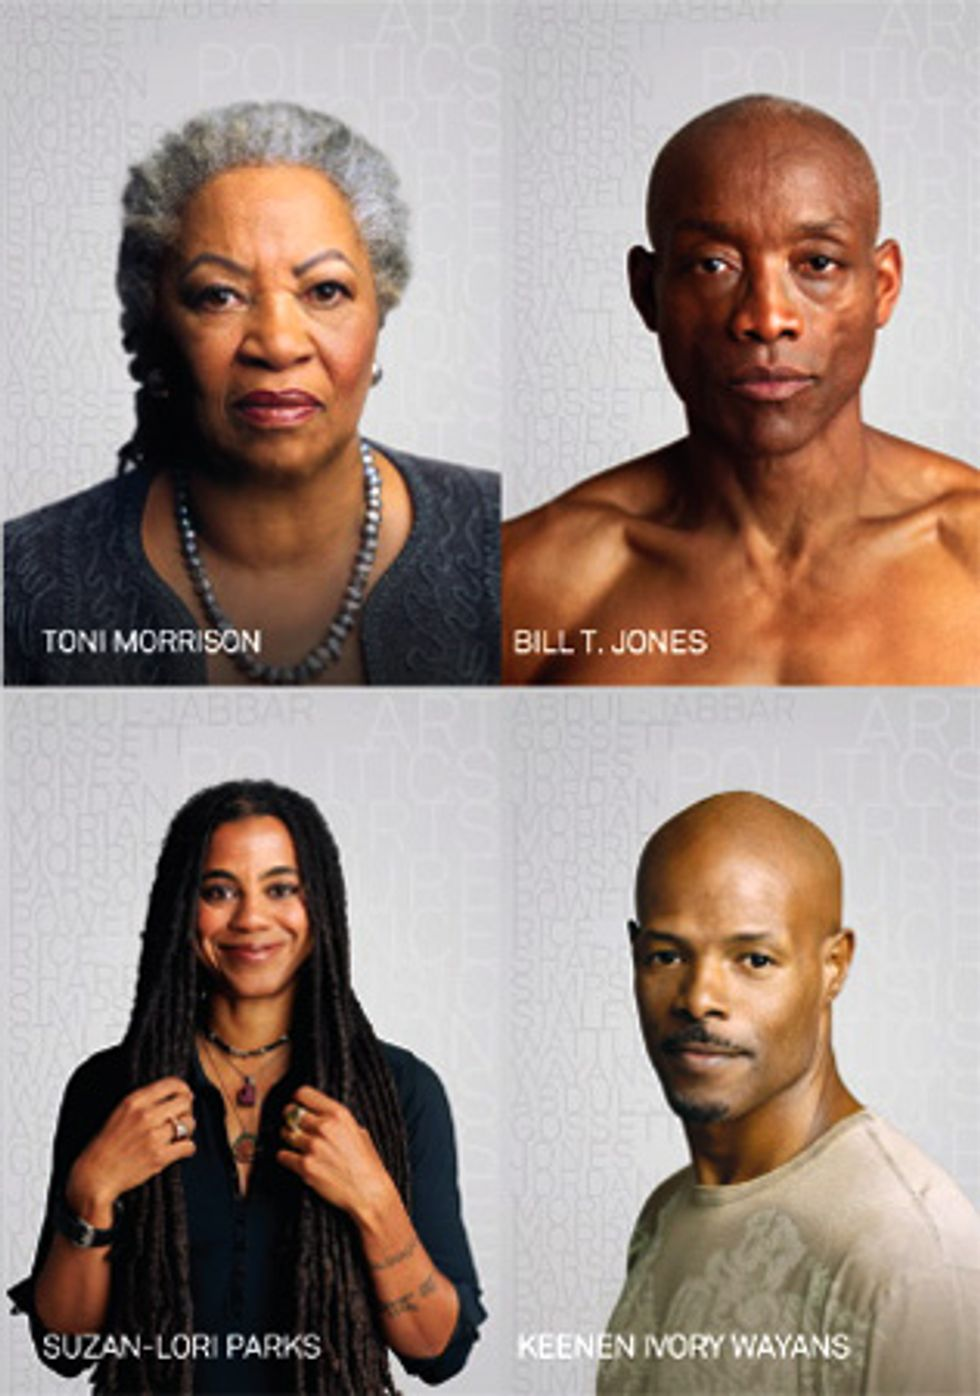 The Talented Tenth: Black folks come out for HBO's The Blacklist